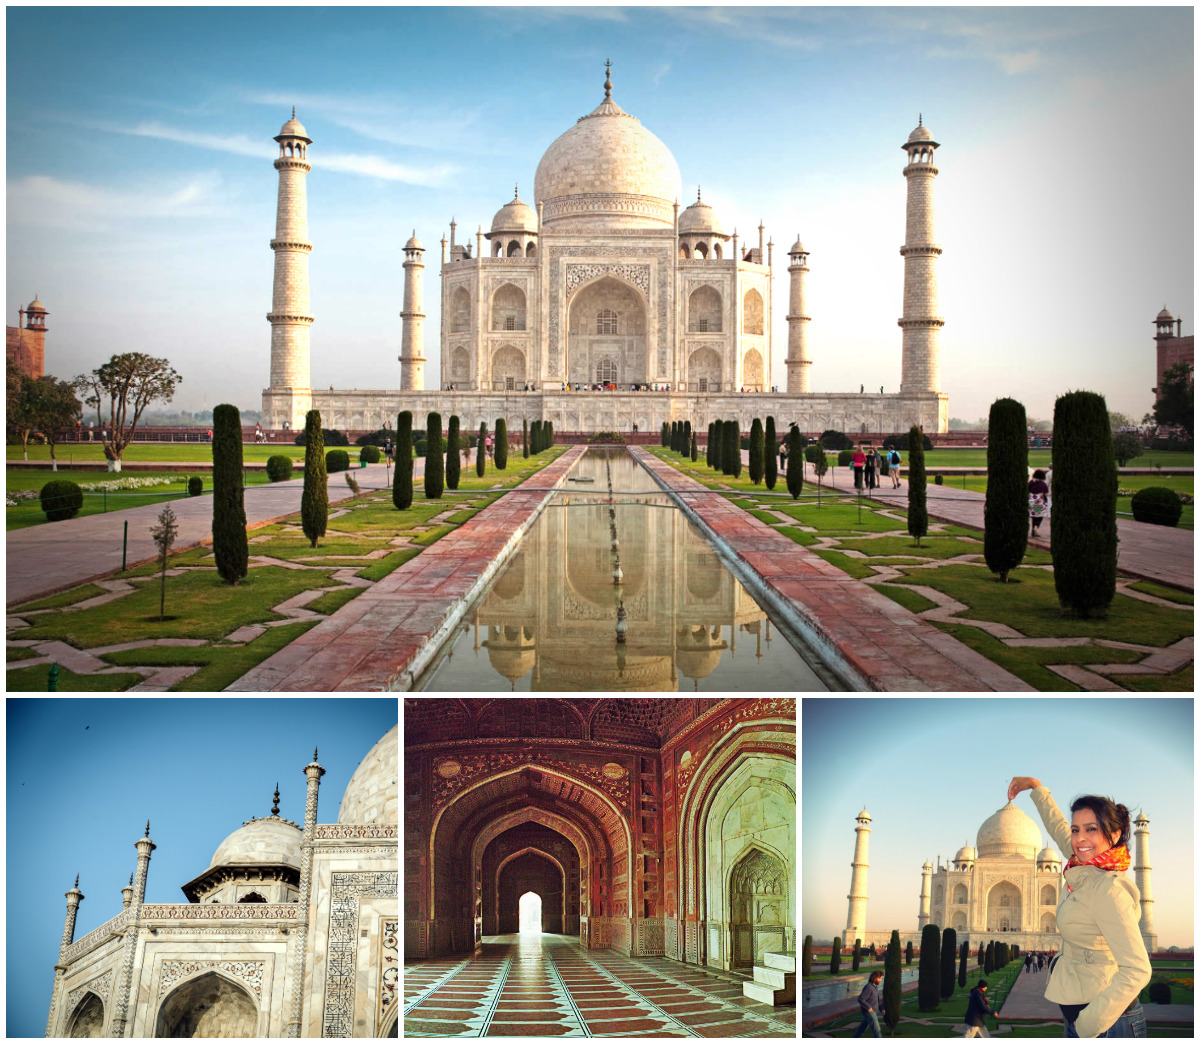 Taj Mahal collage.jpg